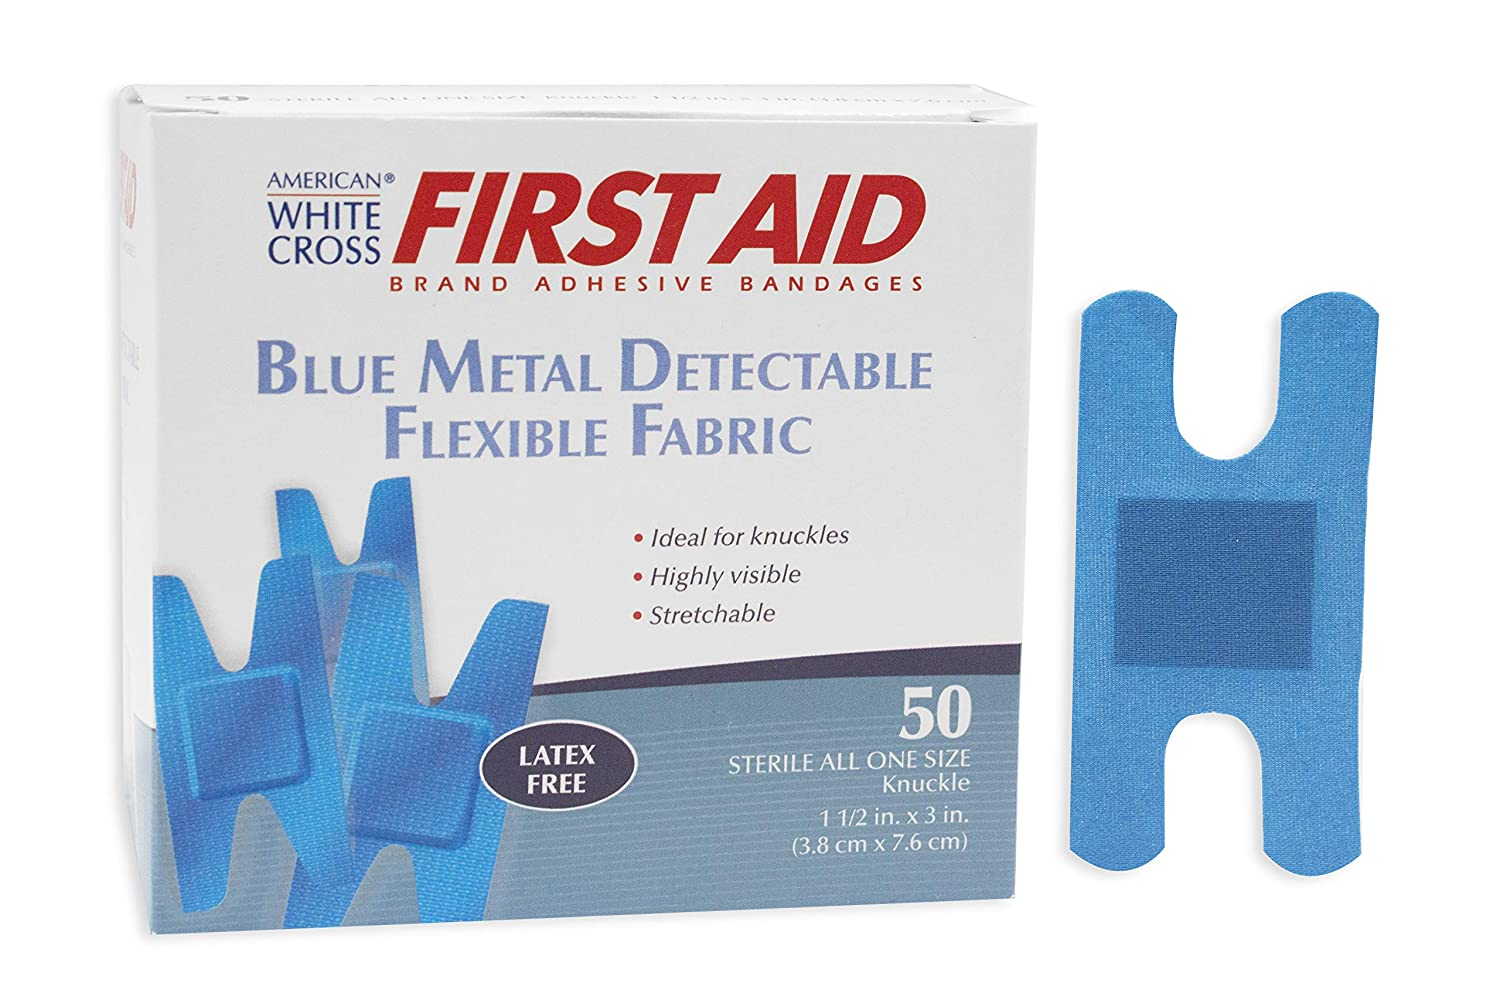 Image of American White Cross Blue Metal Detectable Adhesive Strips, Sterile, Lightweight 1-1 per 2' x 3' Knuckle Bulk Singles, 1 per Pack, 1800 Pack per Case (Pack of 1800)